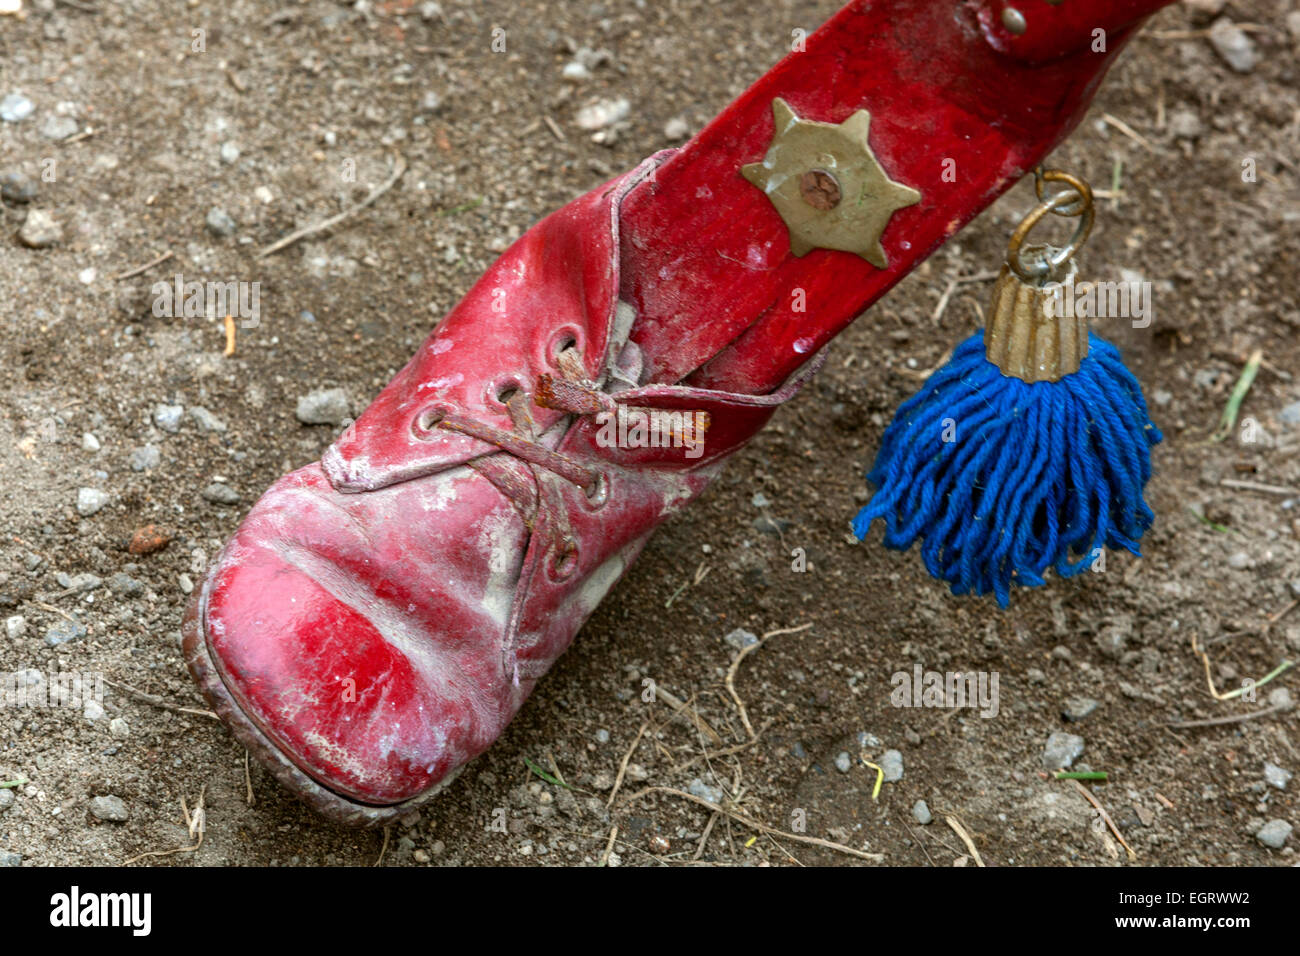 red shoe on Musical instrument - vozembouch - Stock Image